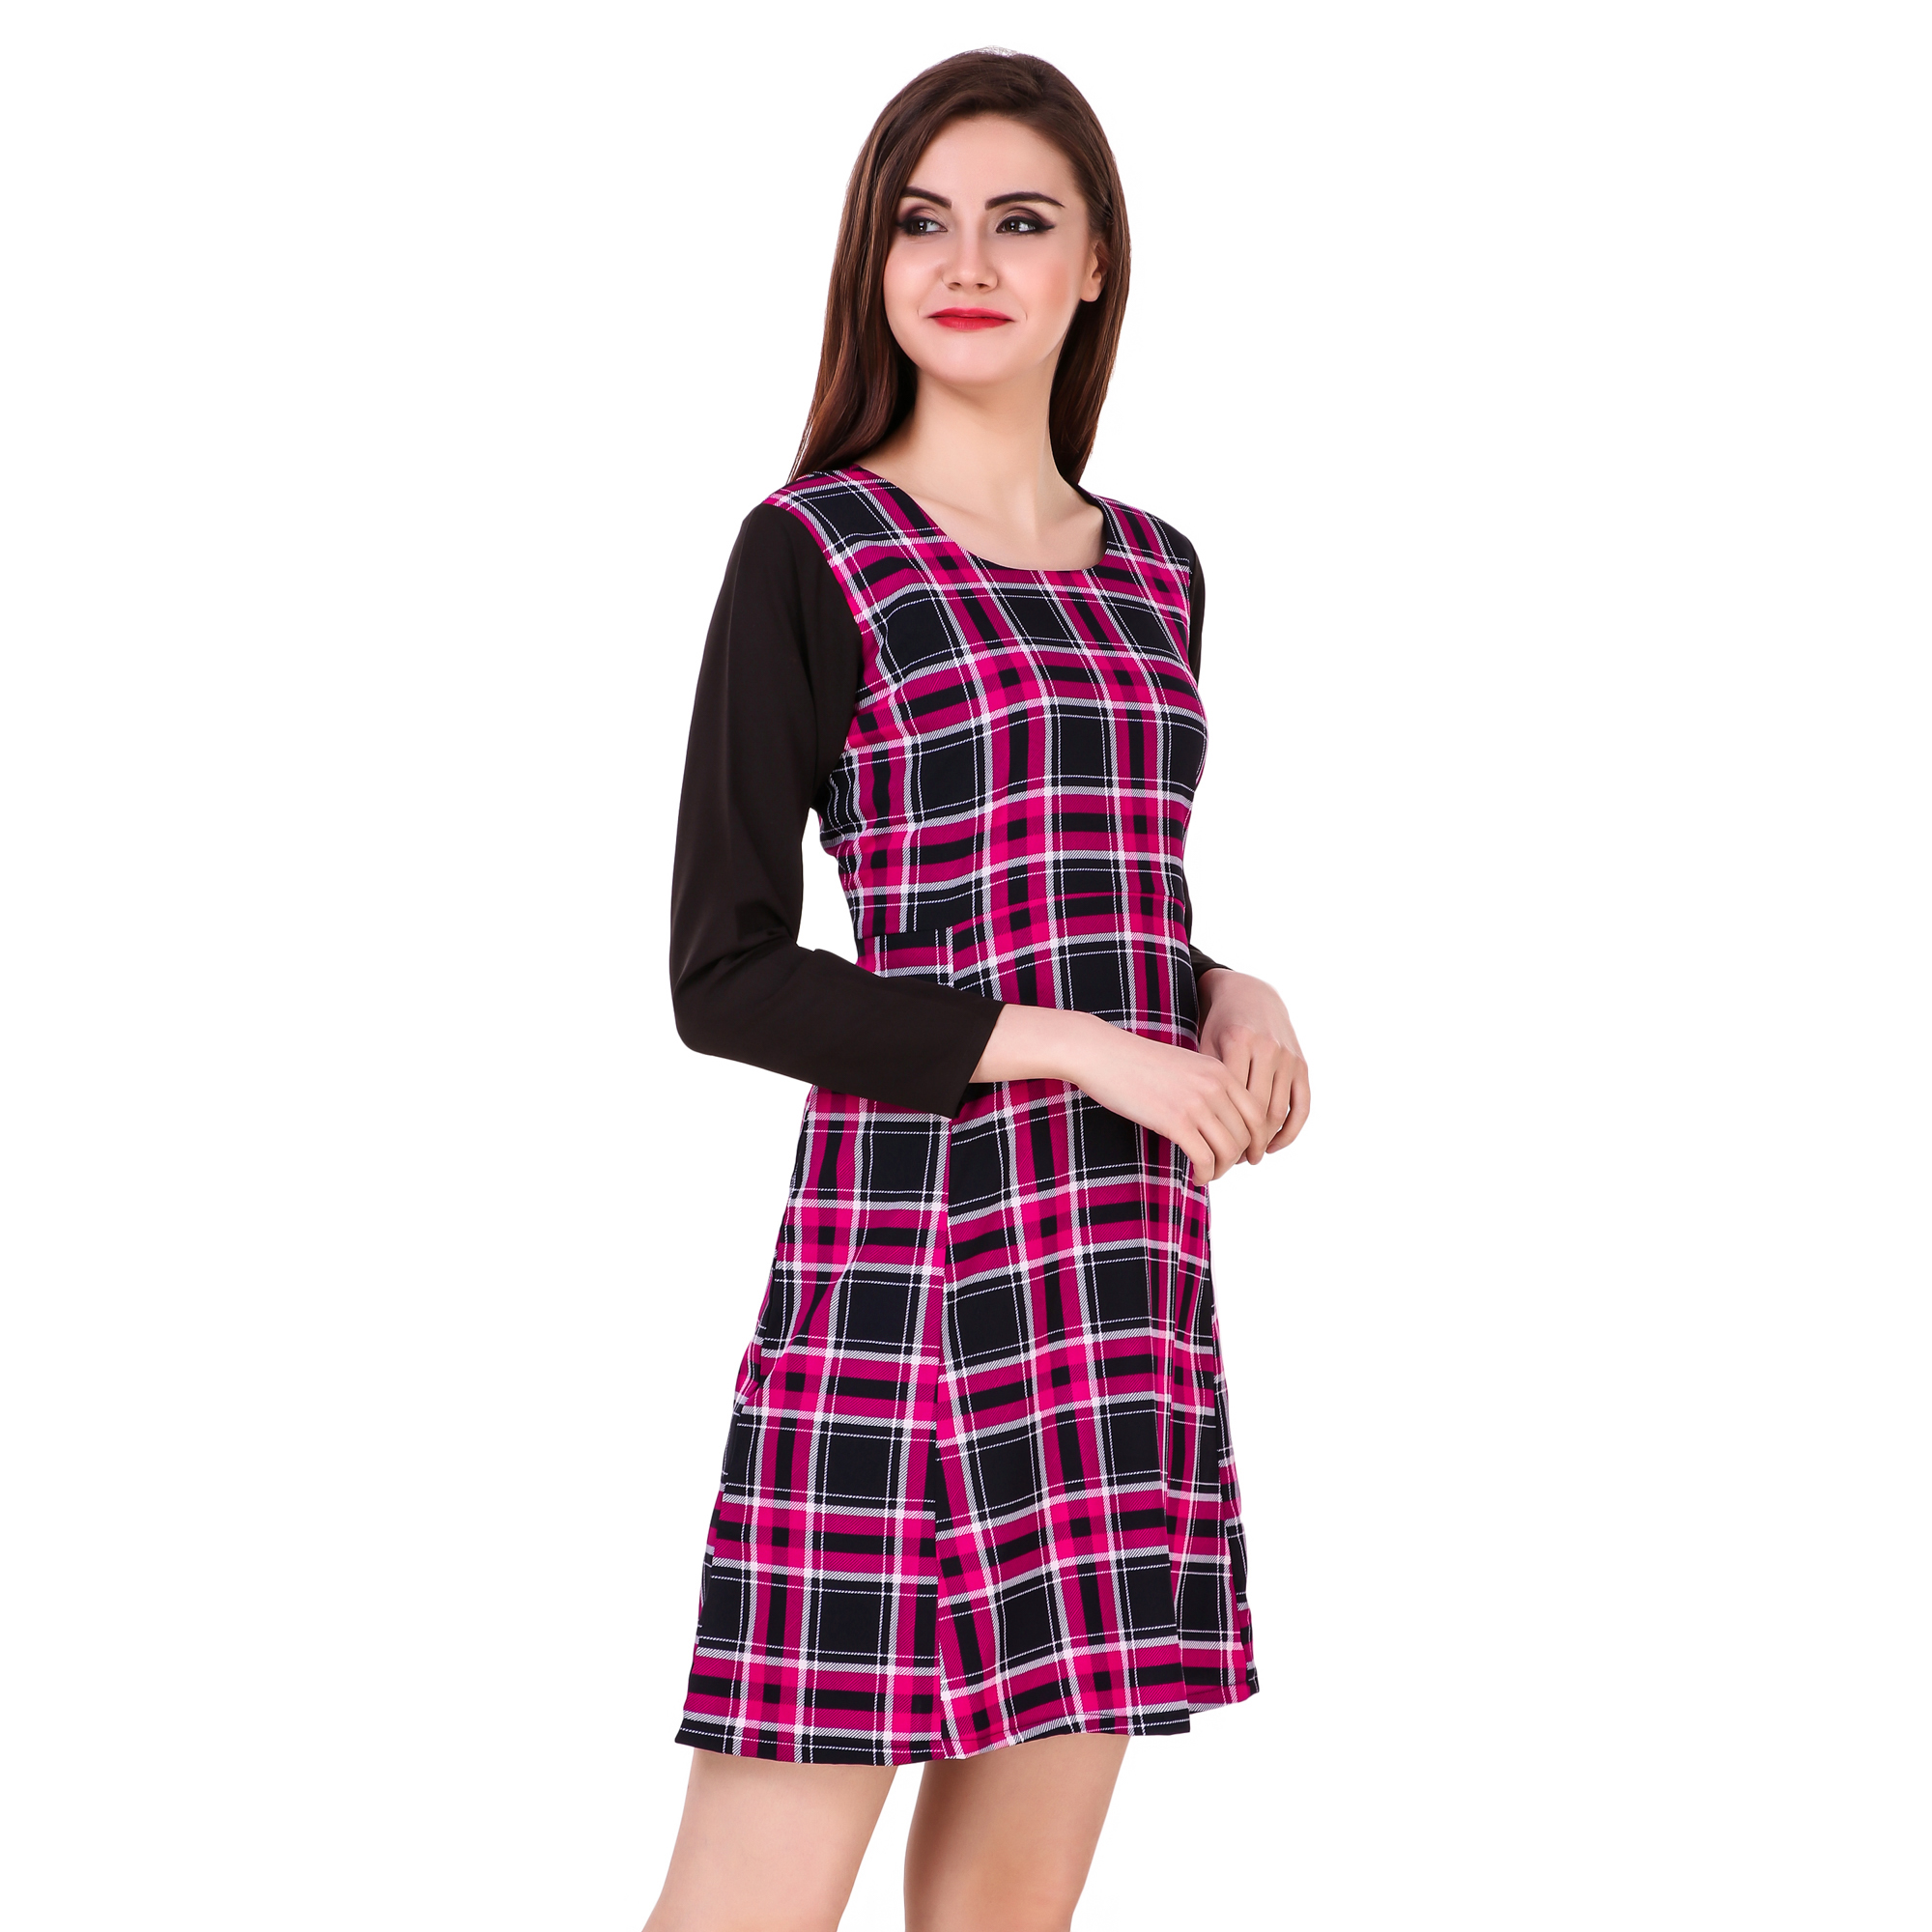 Pink And Black Checks Printed One Piece Dress With Sleeves image 3